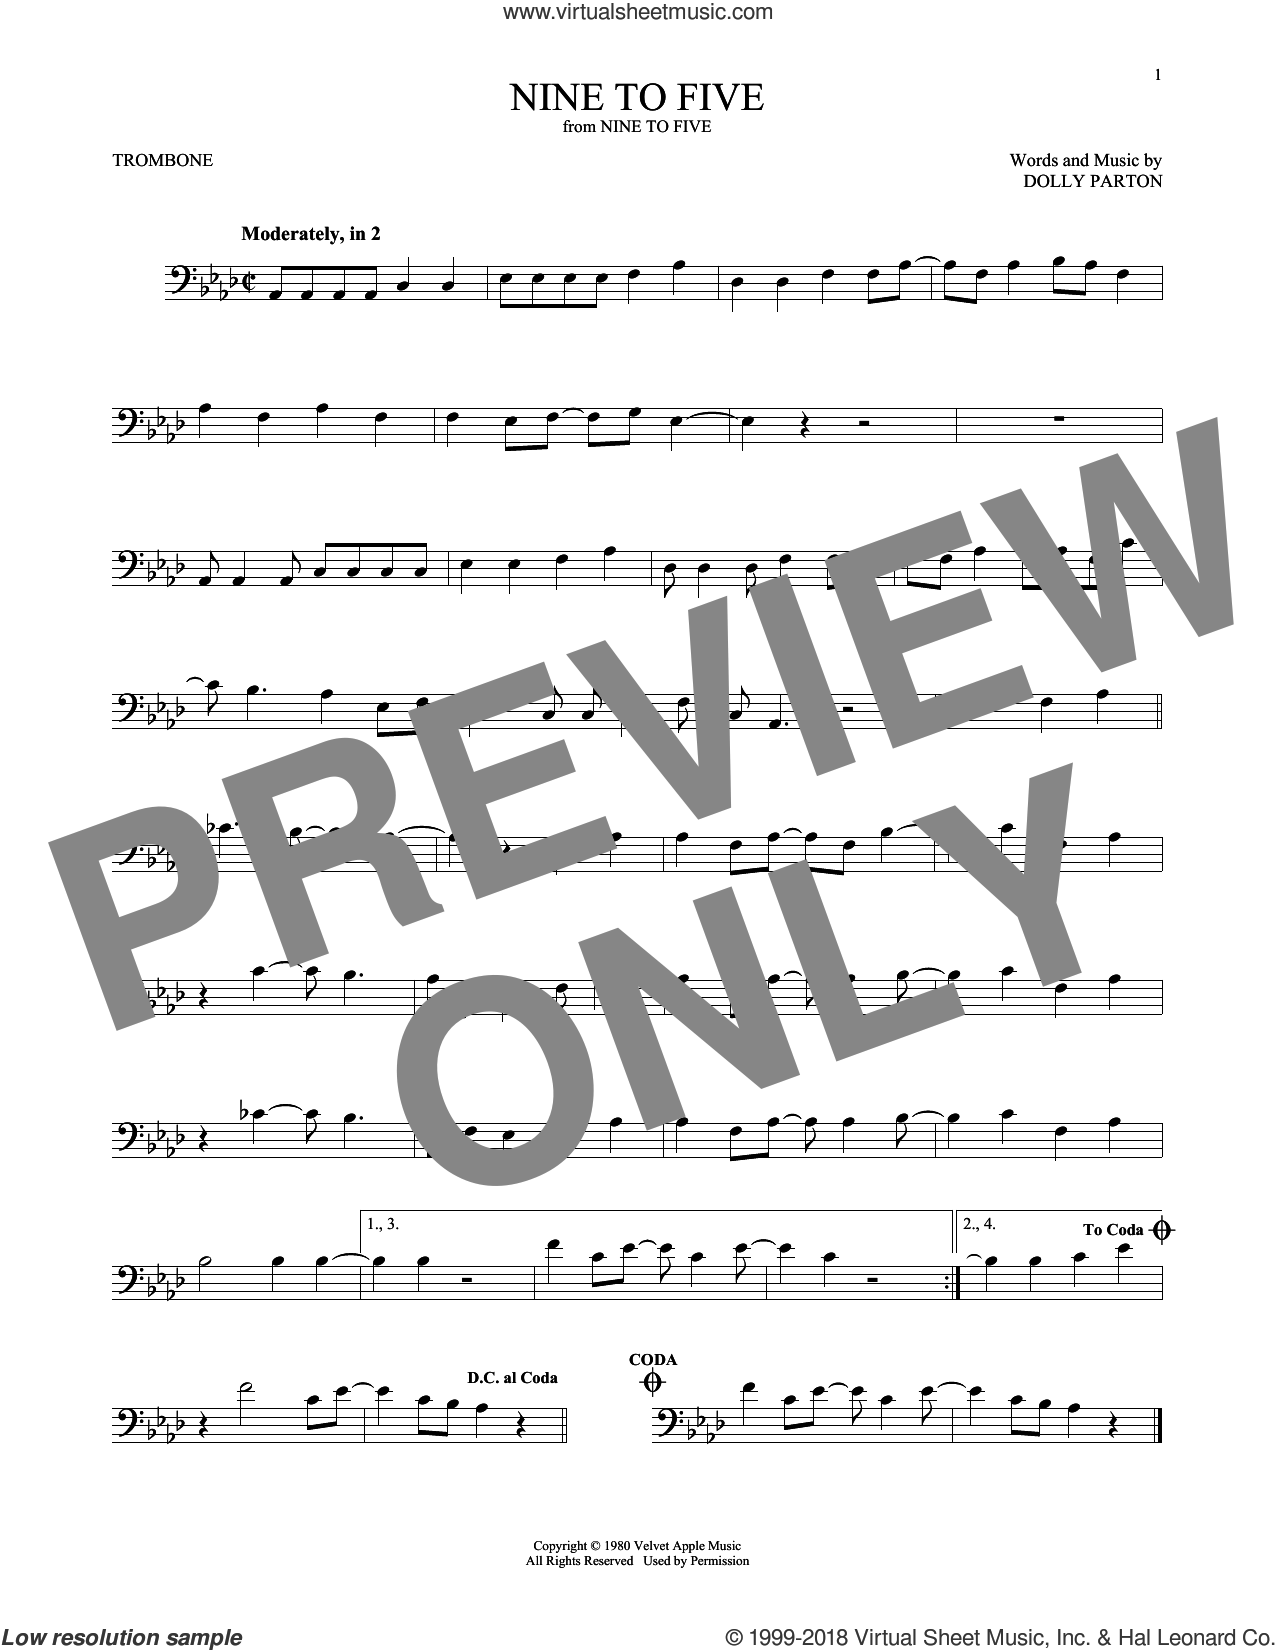 Nine To Five sheet music for trombone solo by Dolly Parton, intermediate skill level